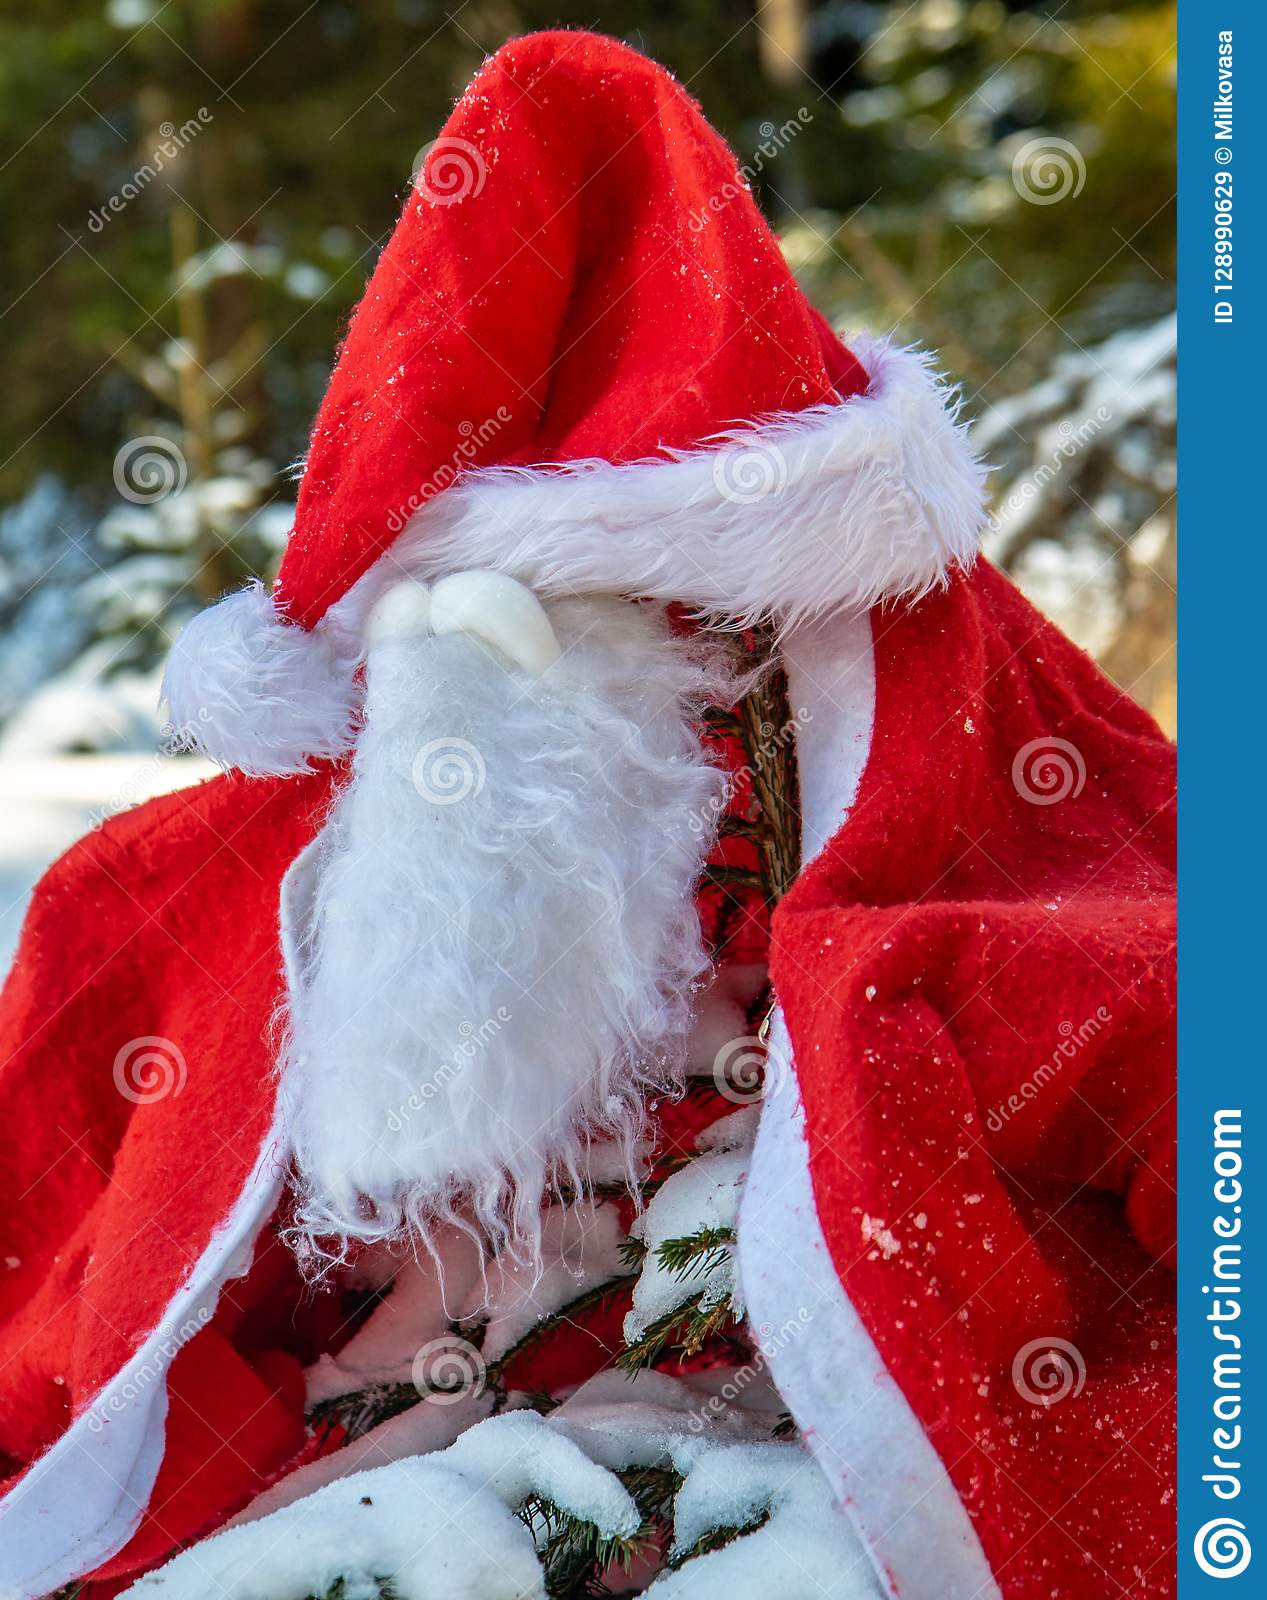 The Santa Claus costume with beards hangs on the spruc